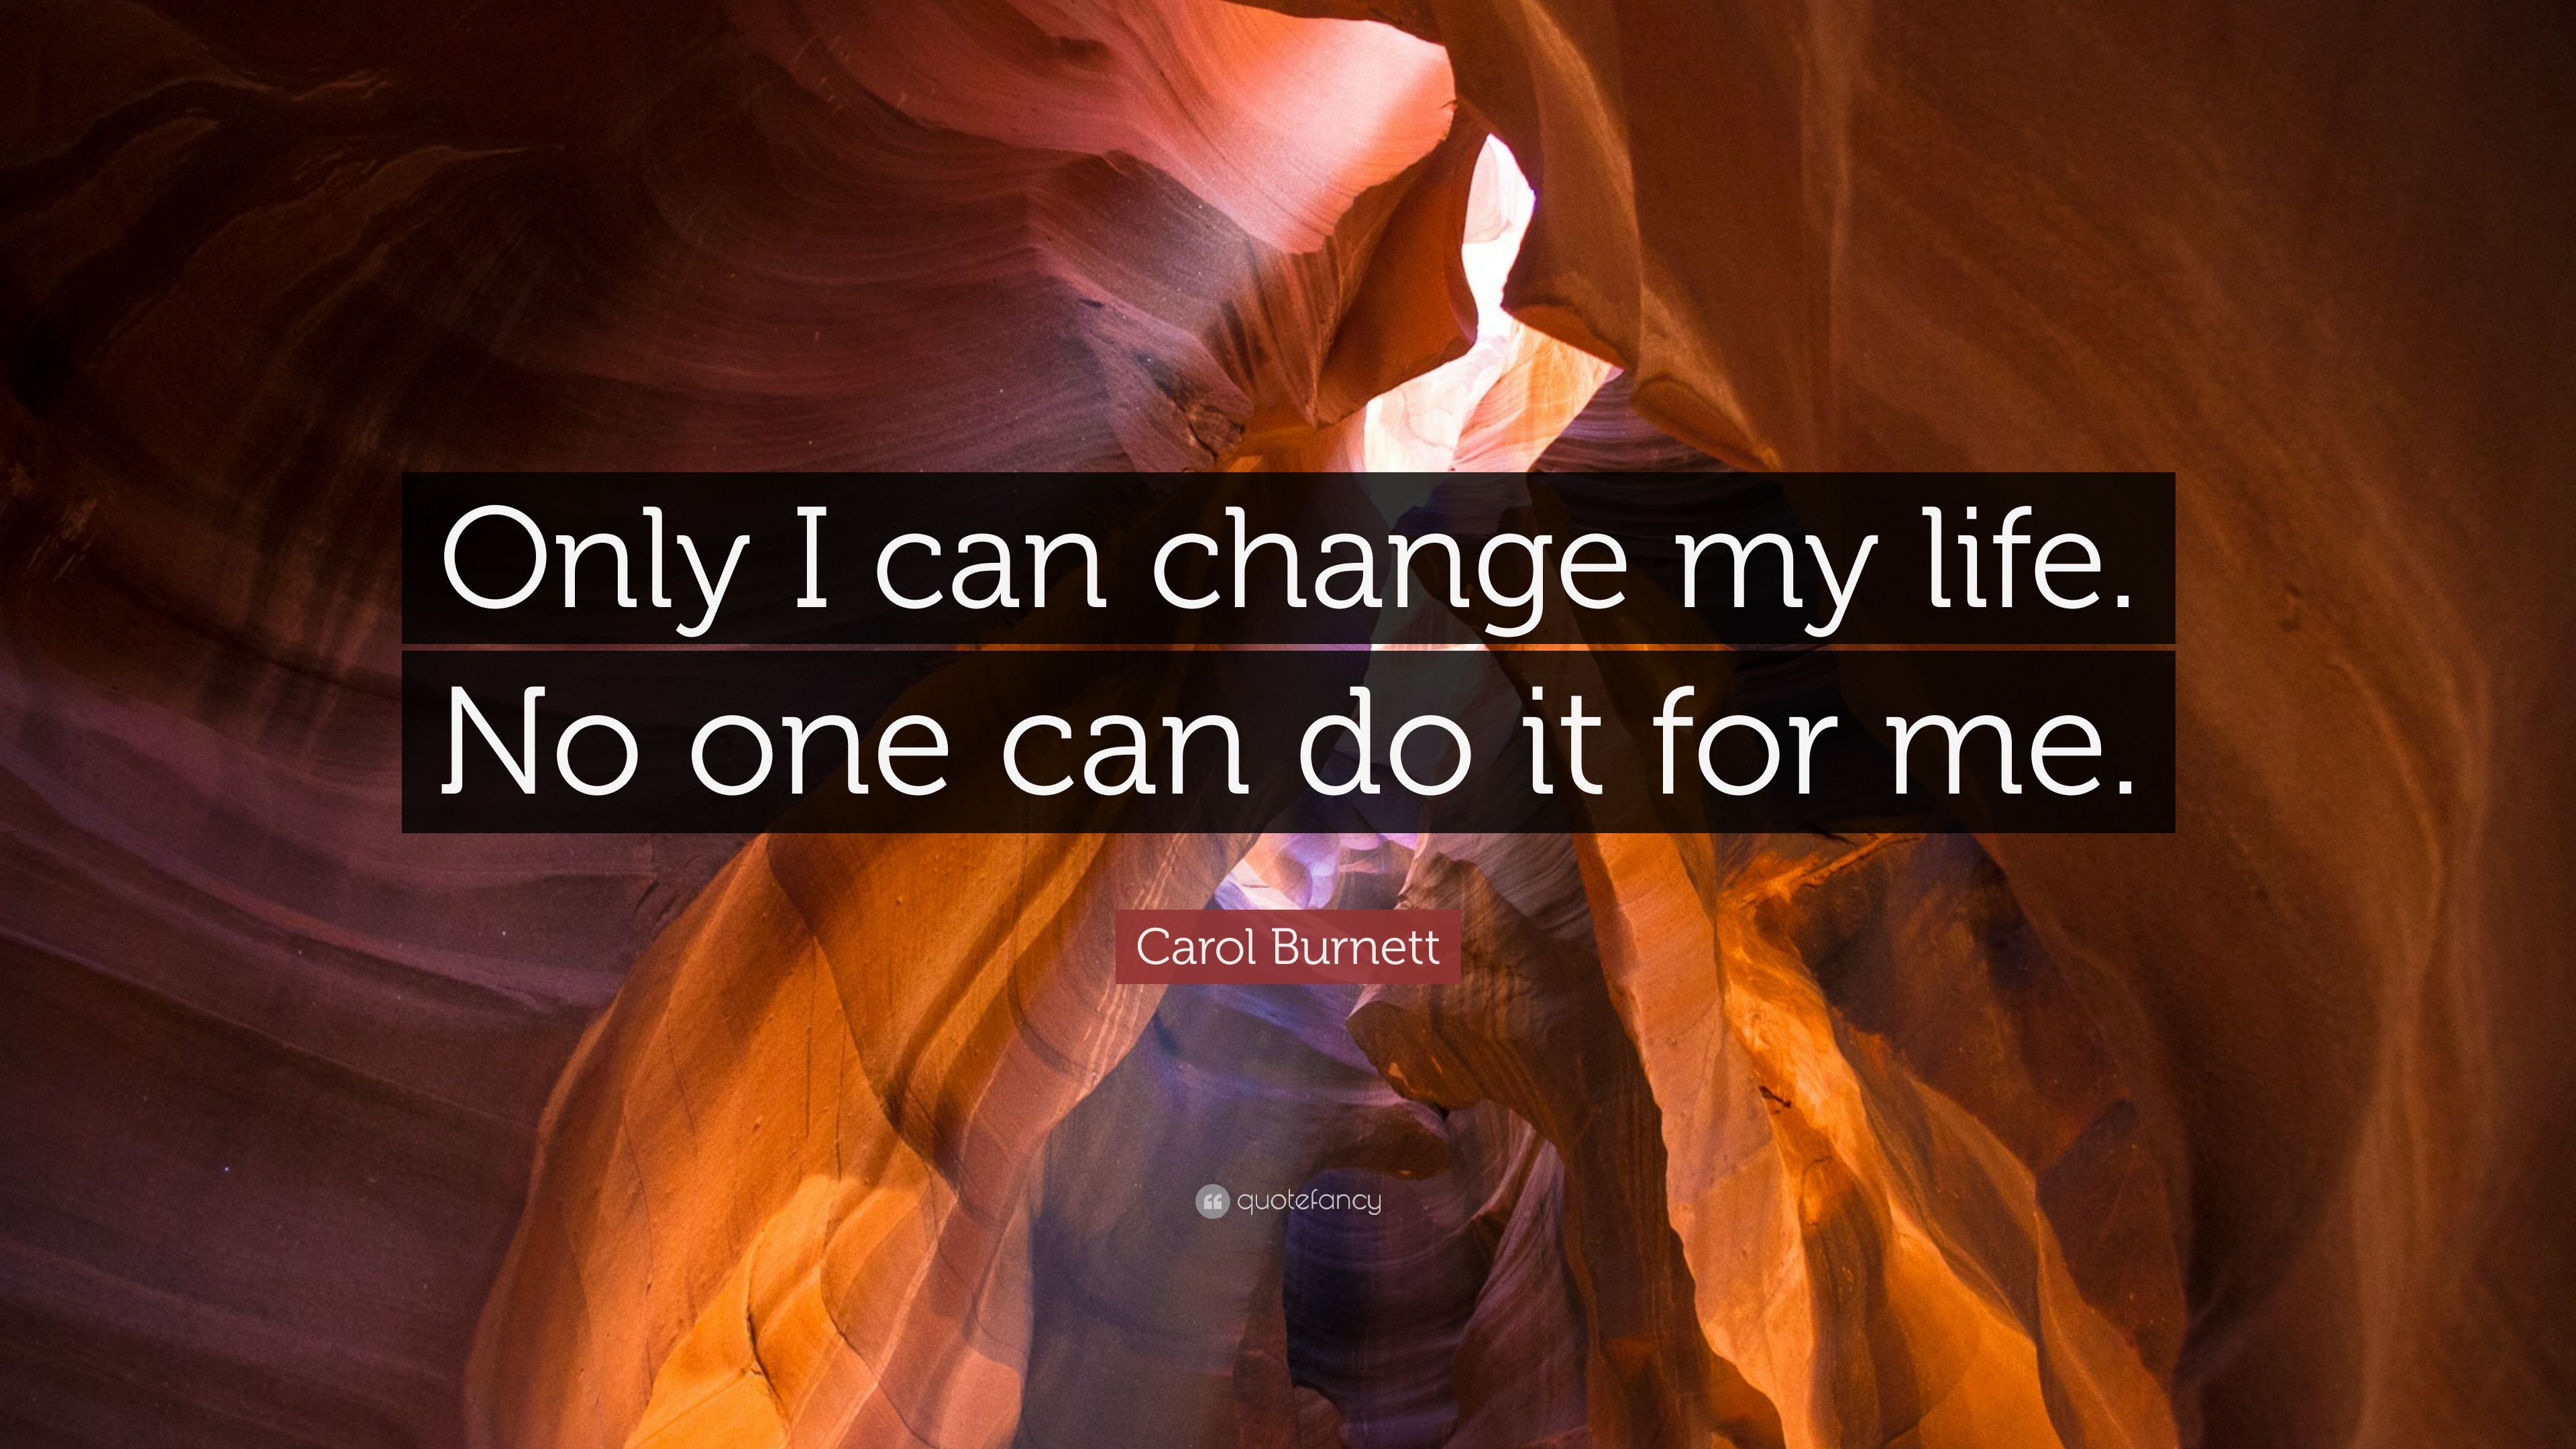 carol burnett quote only i can change my life no one can do it